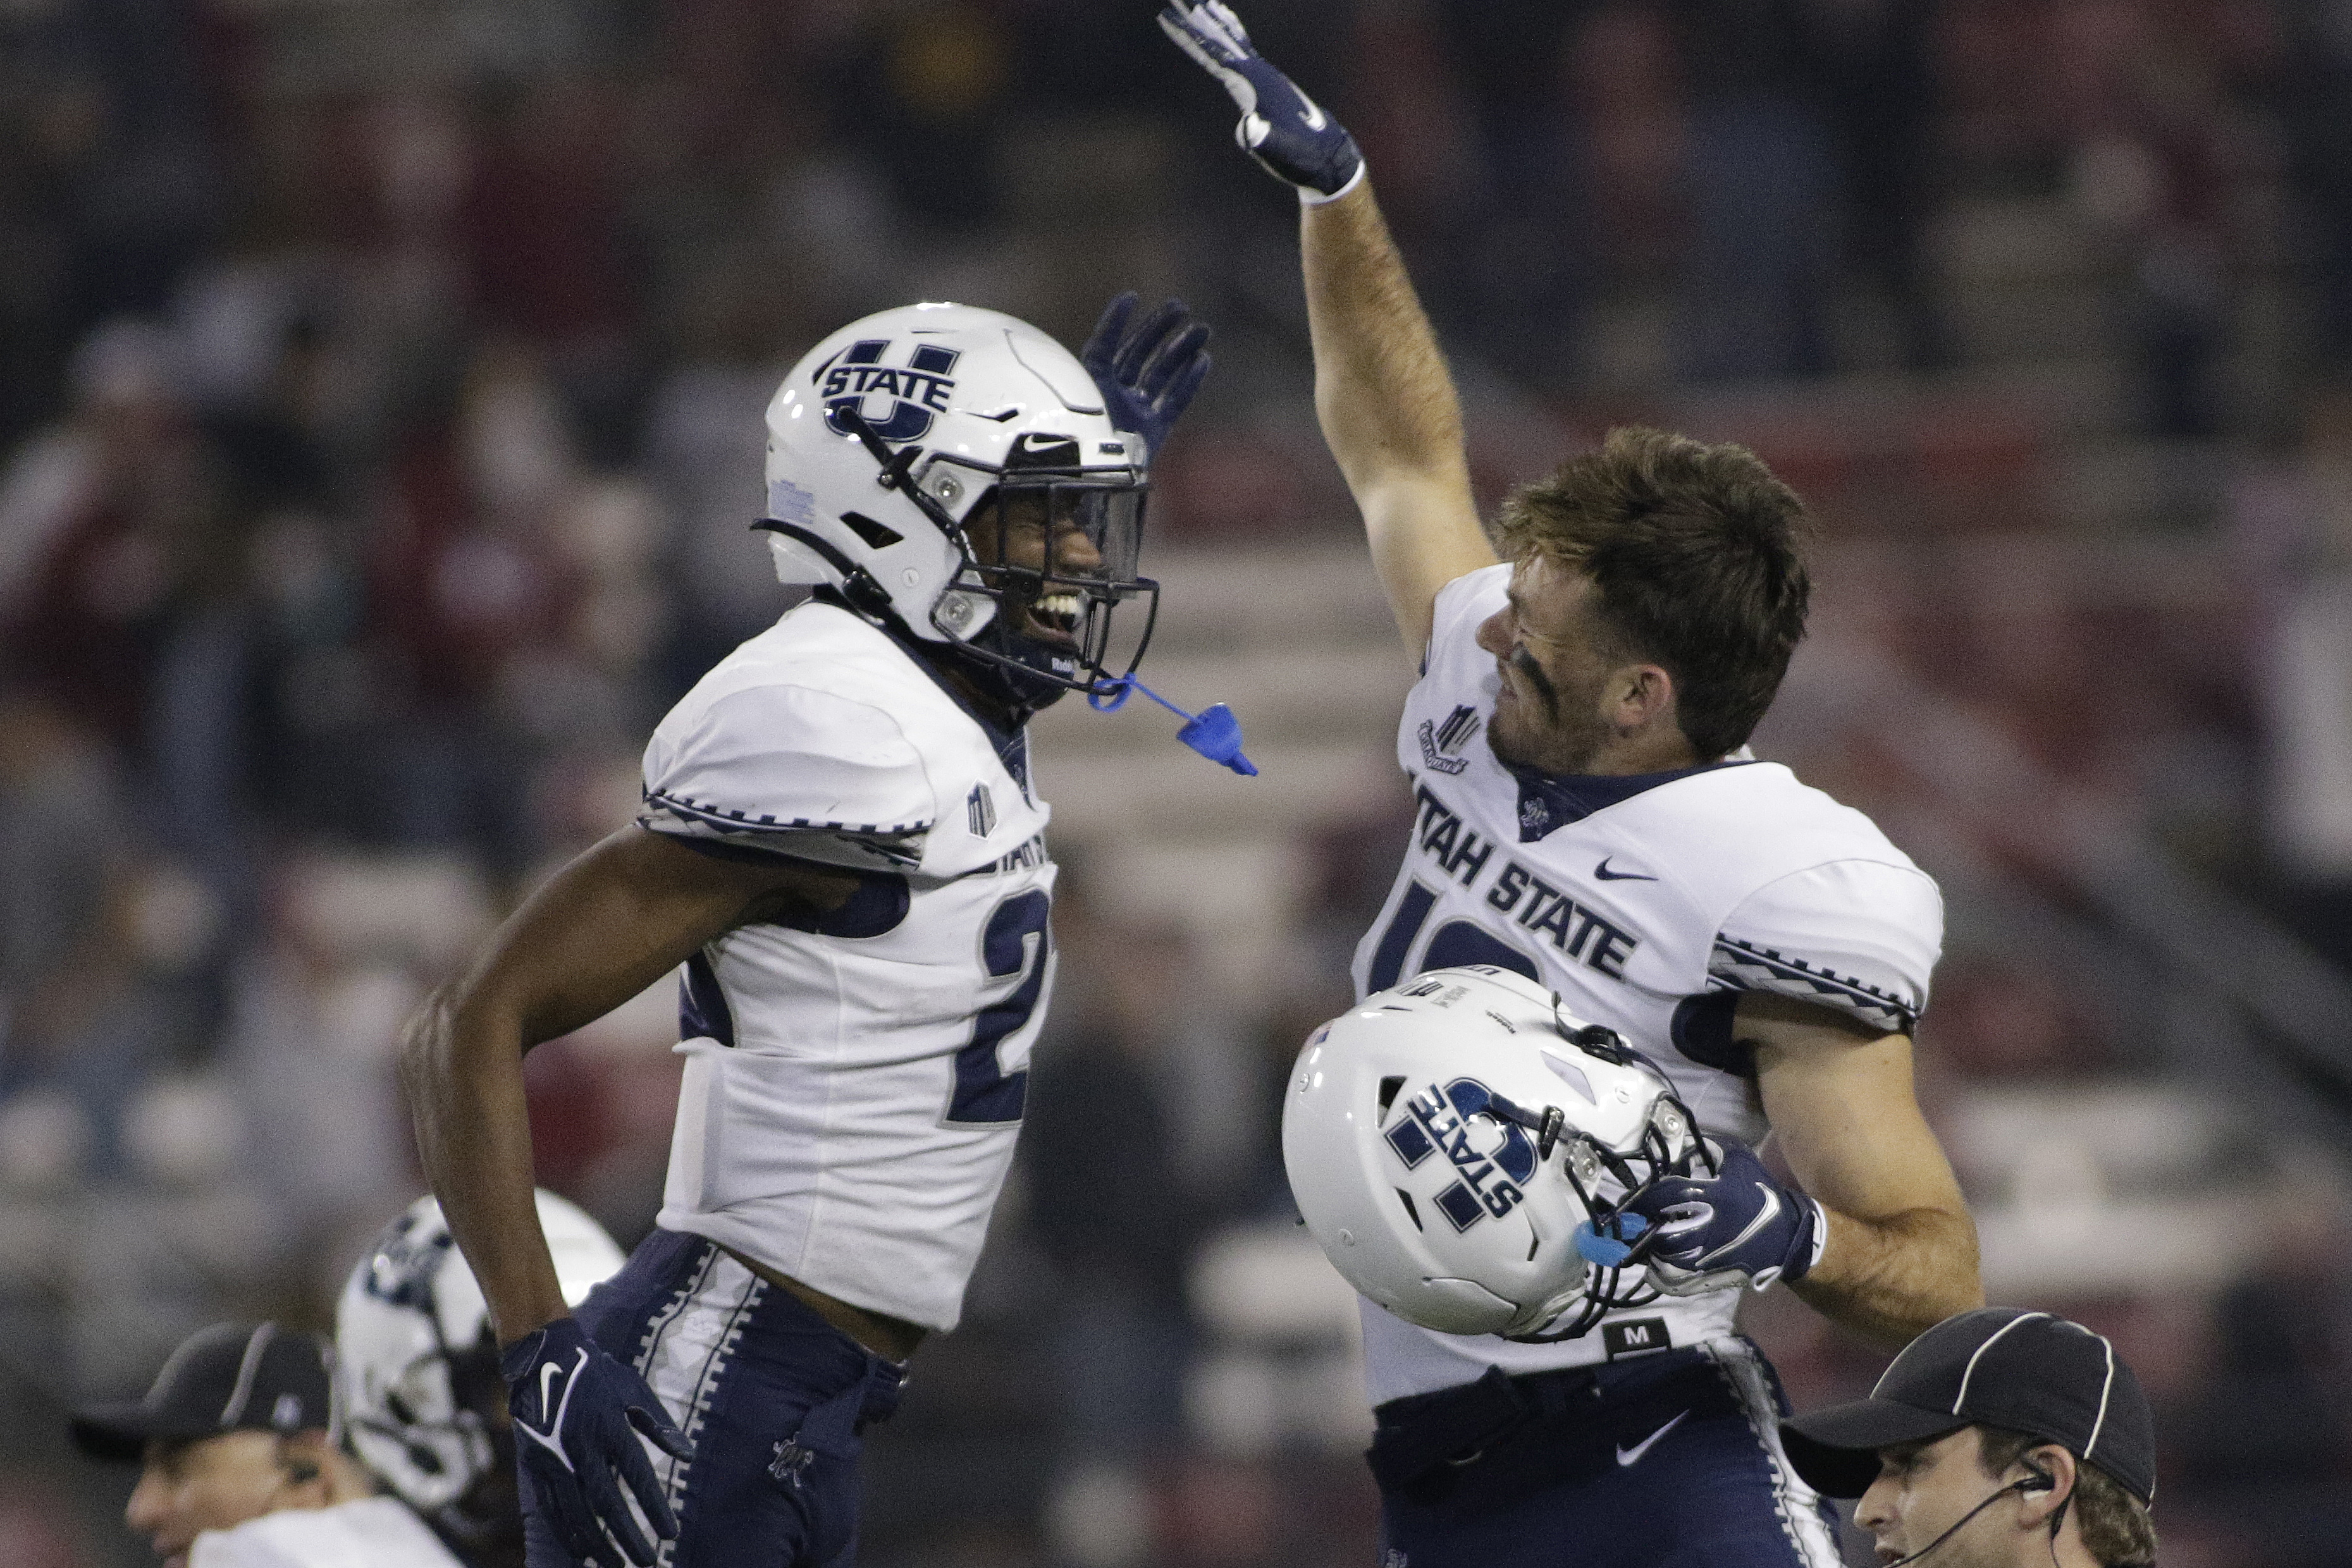 Utah State safety Dominic Tatum, left, and wide receiver Brandon Bowling celebrate the team's 26-23 win against Washington State.